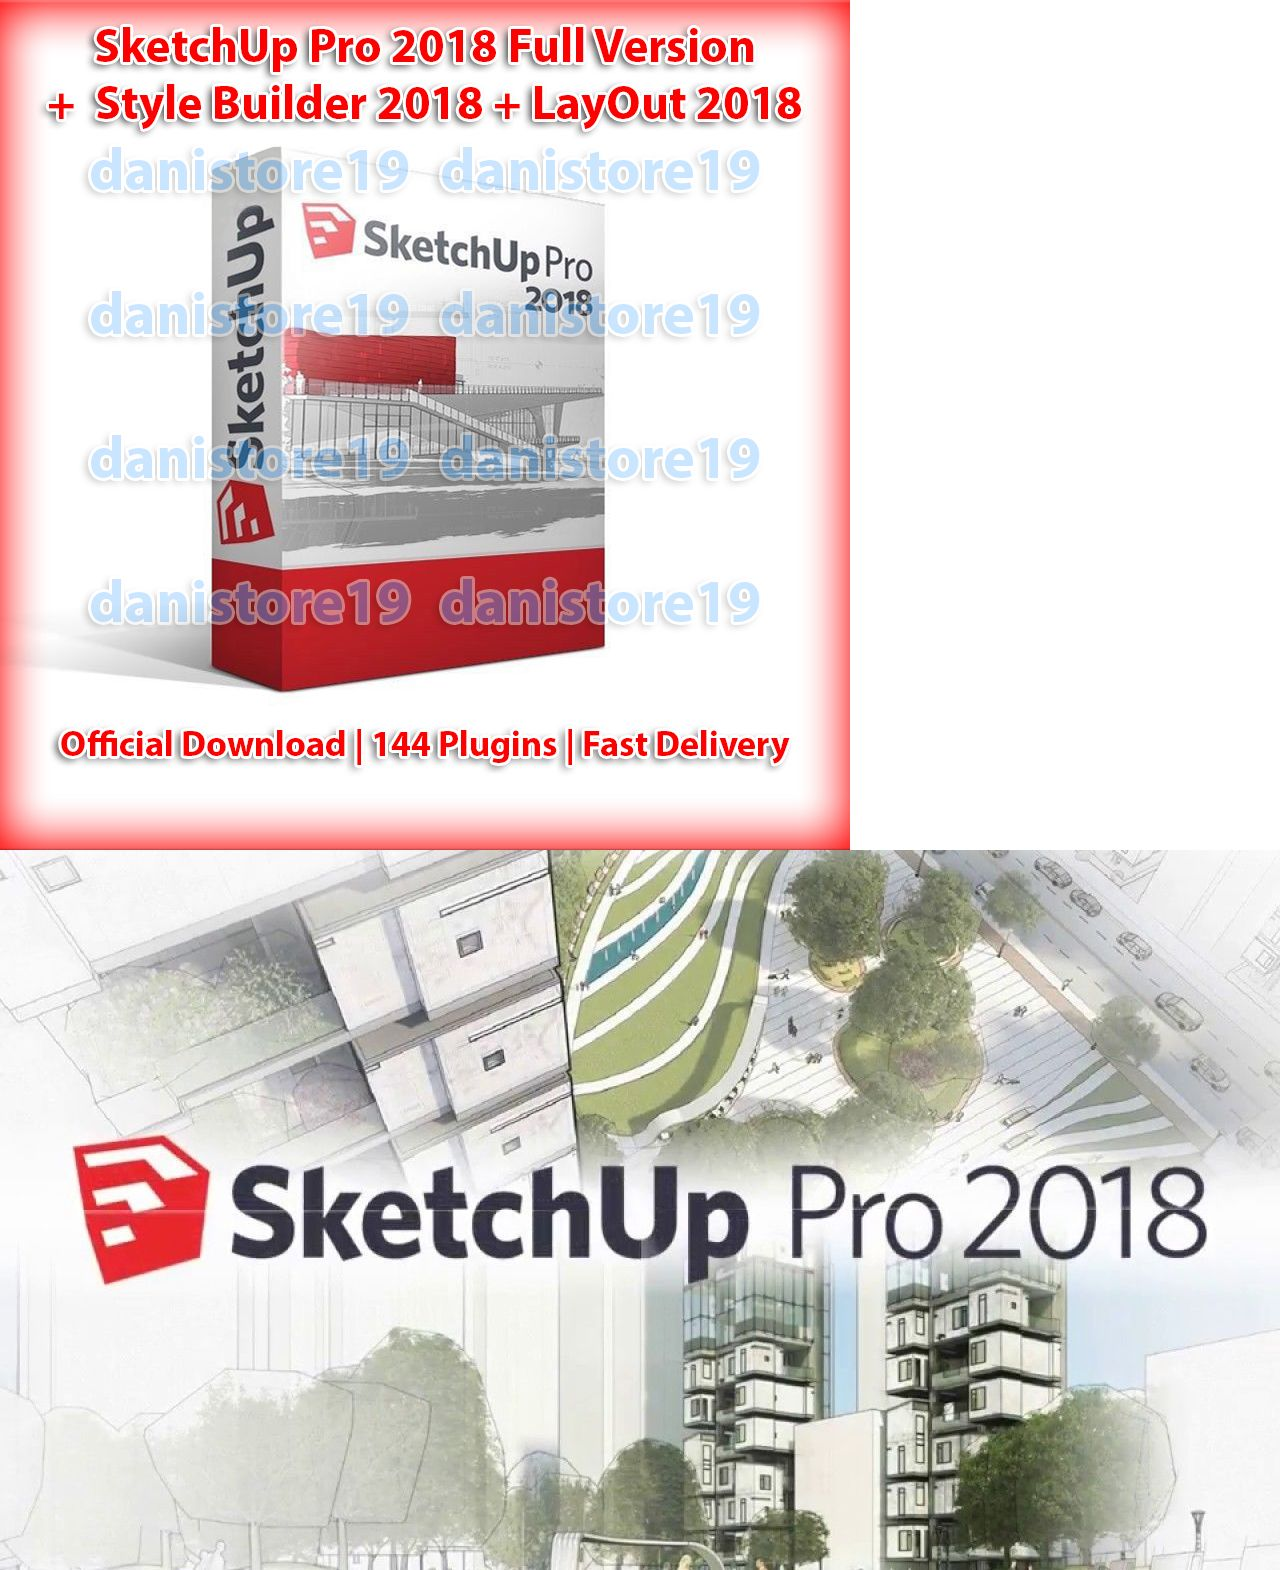 Image Video And Audio 41859 Sketchup Pro 2018 Style Builder